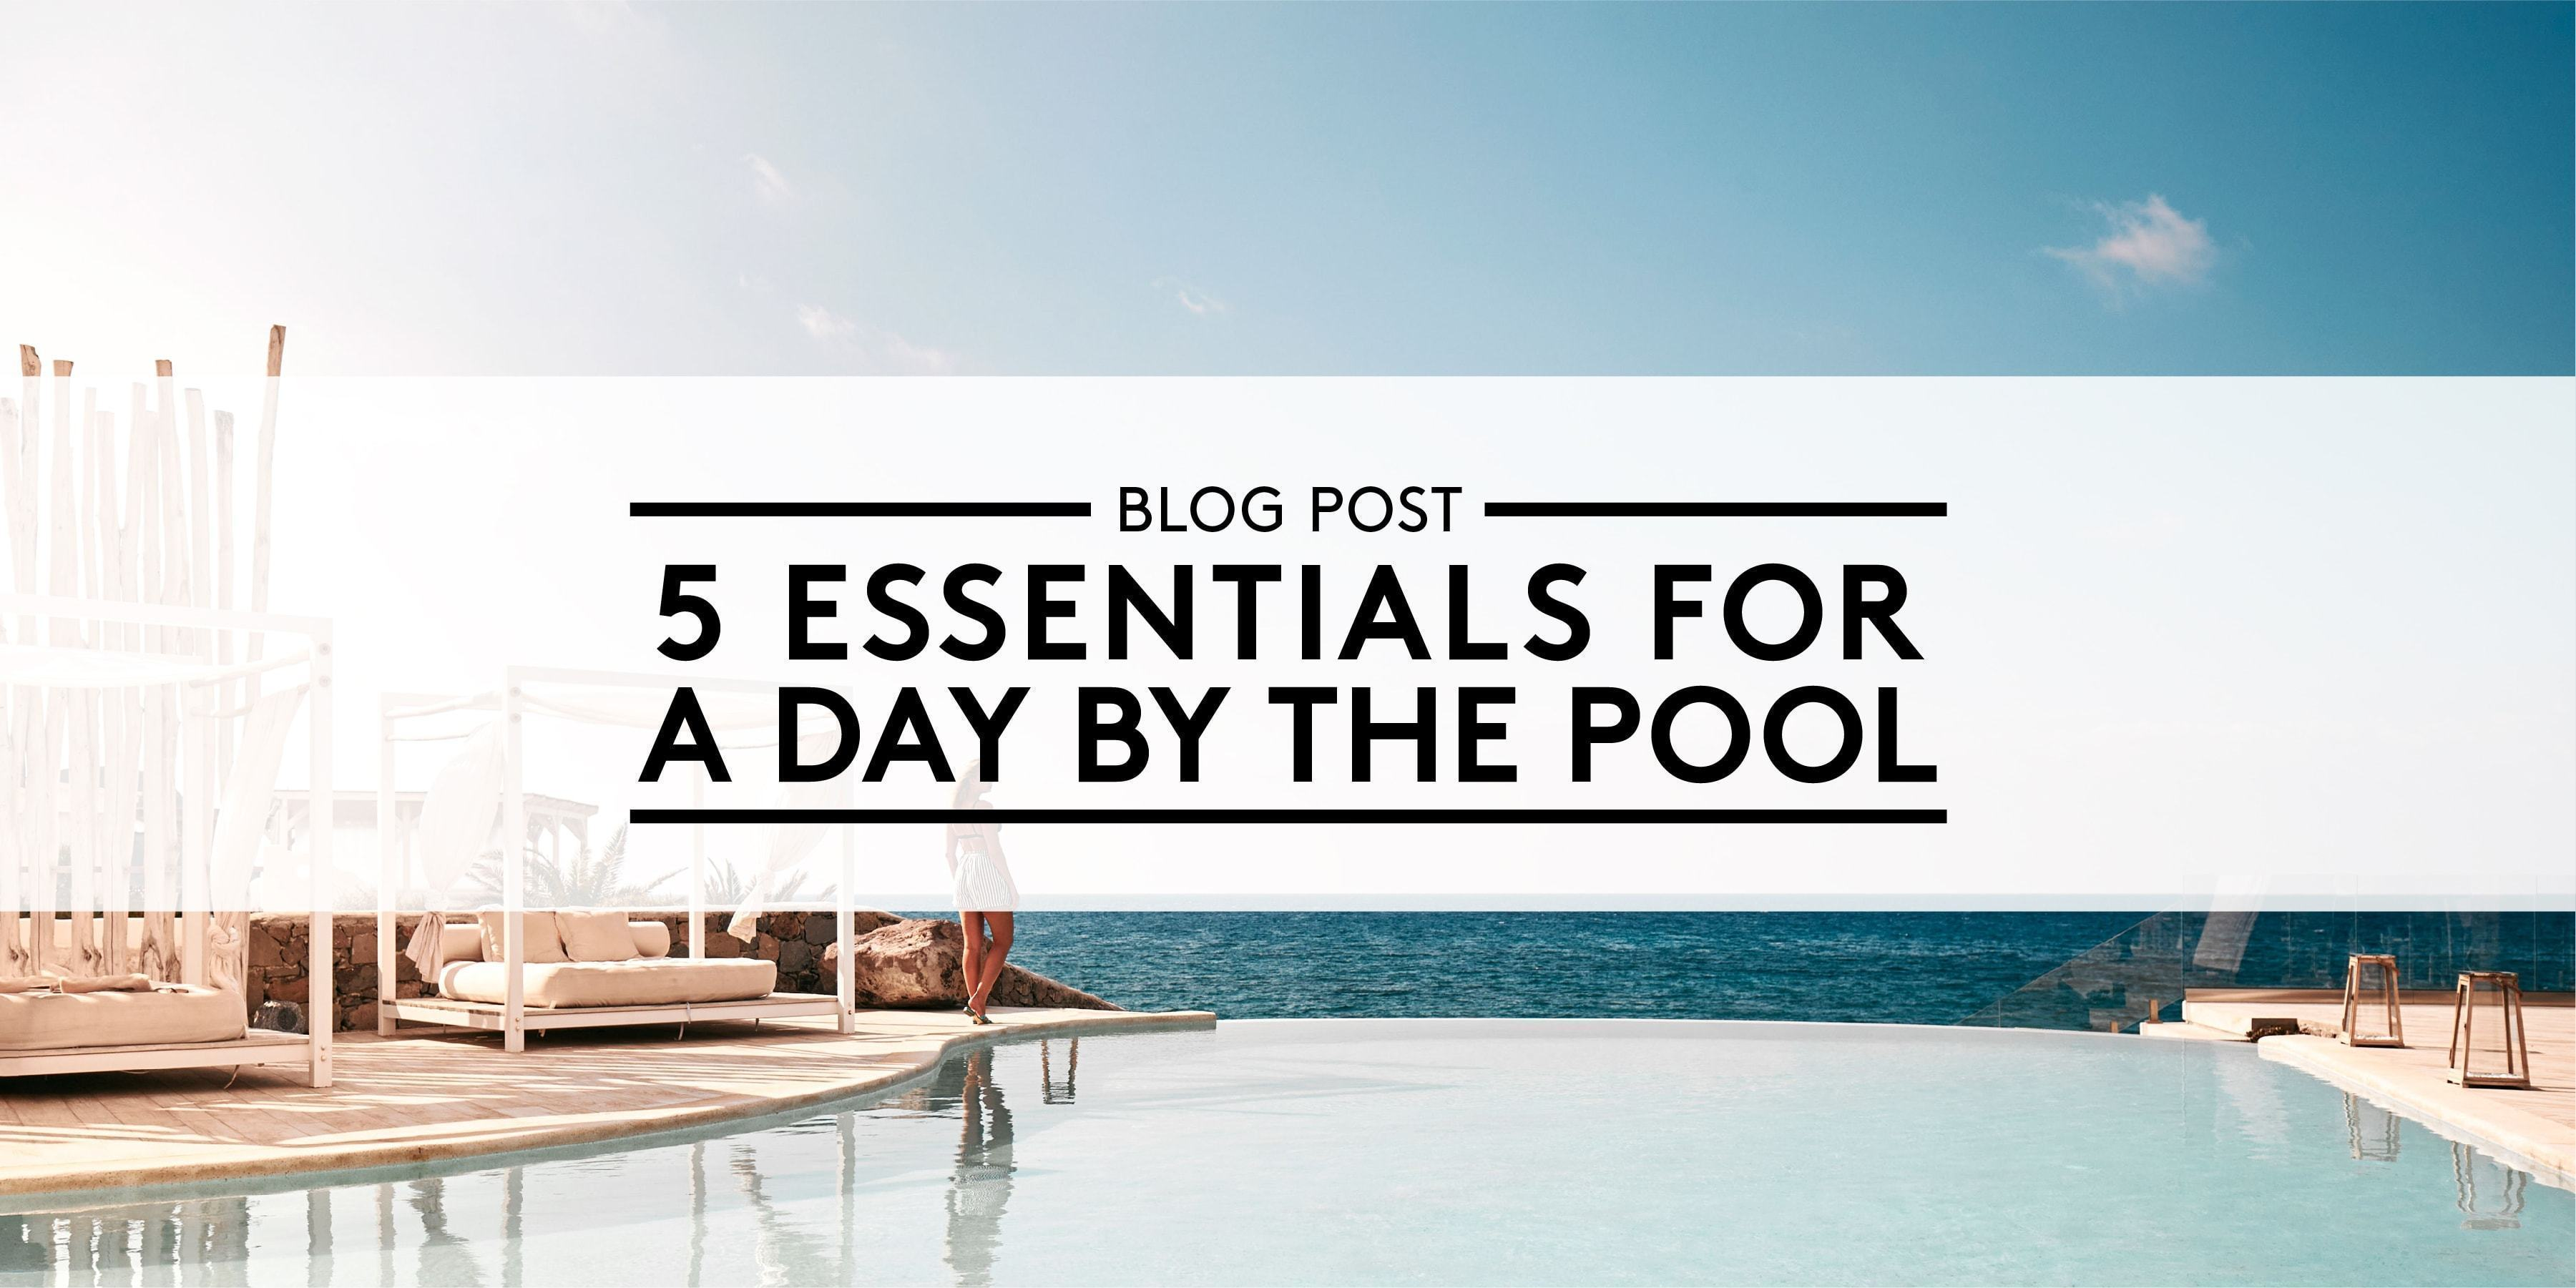 5 Essentials for a Day by the Pool